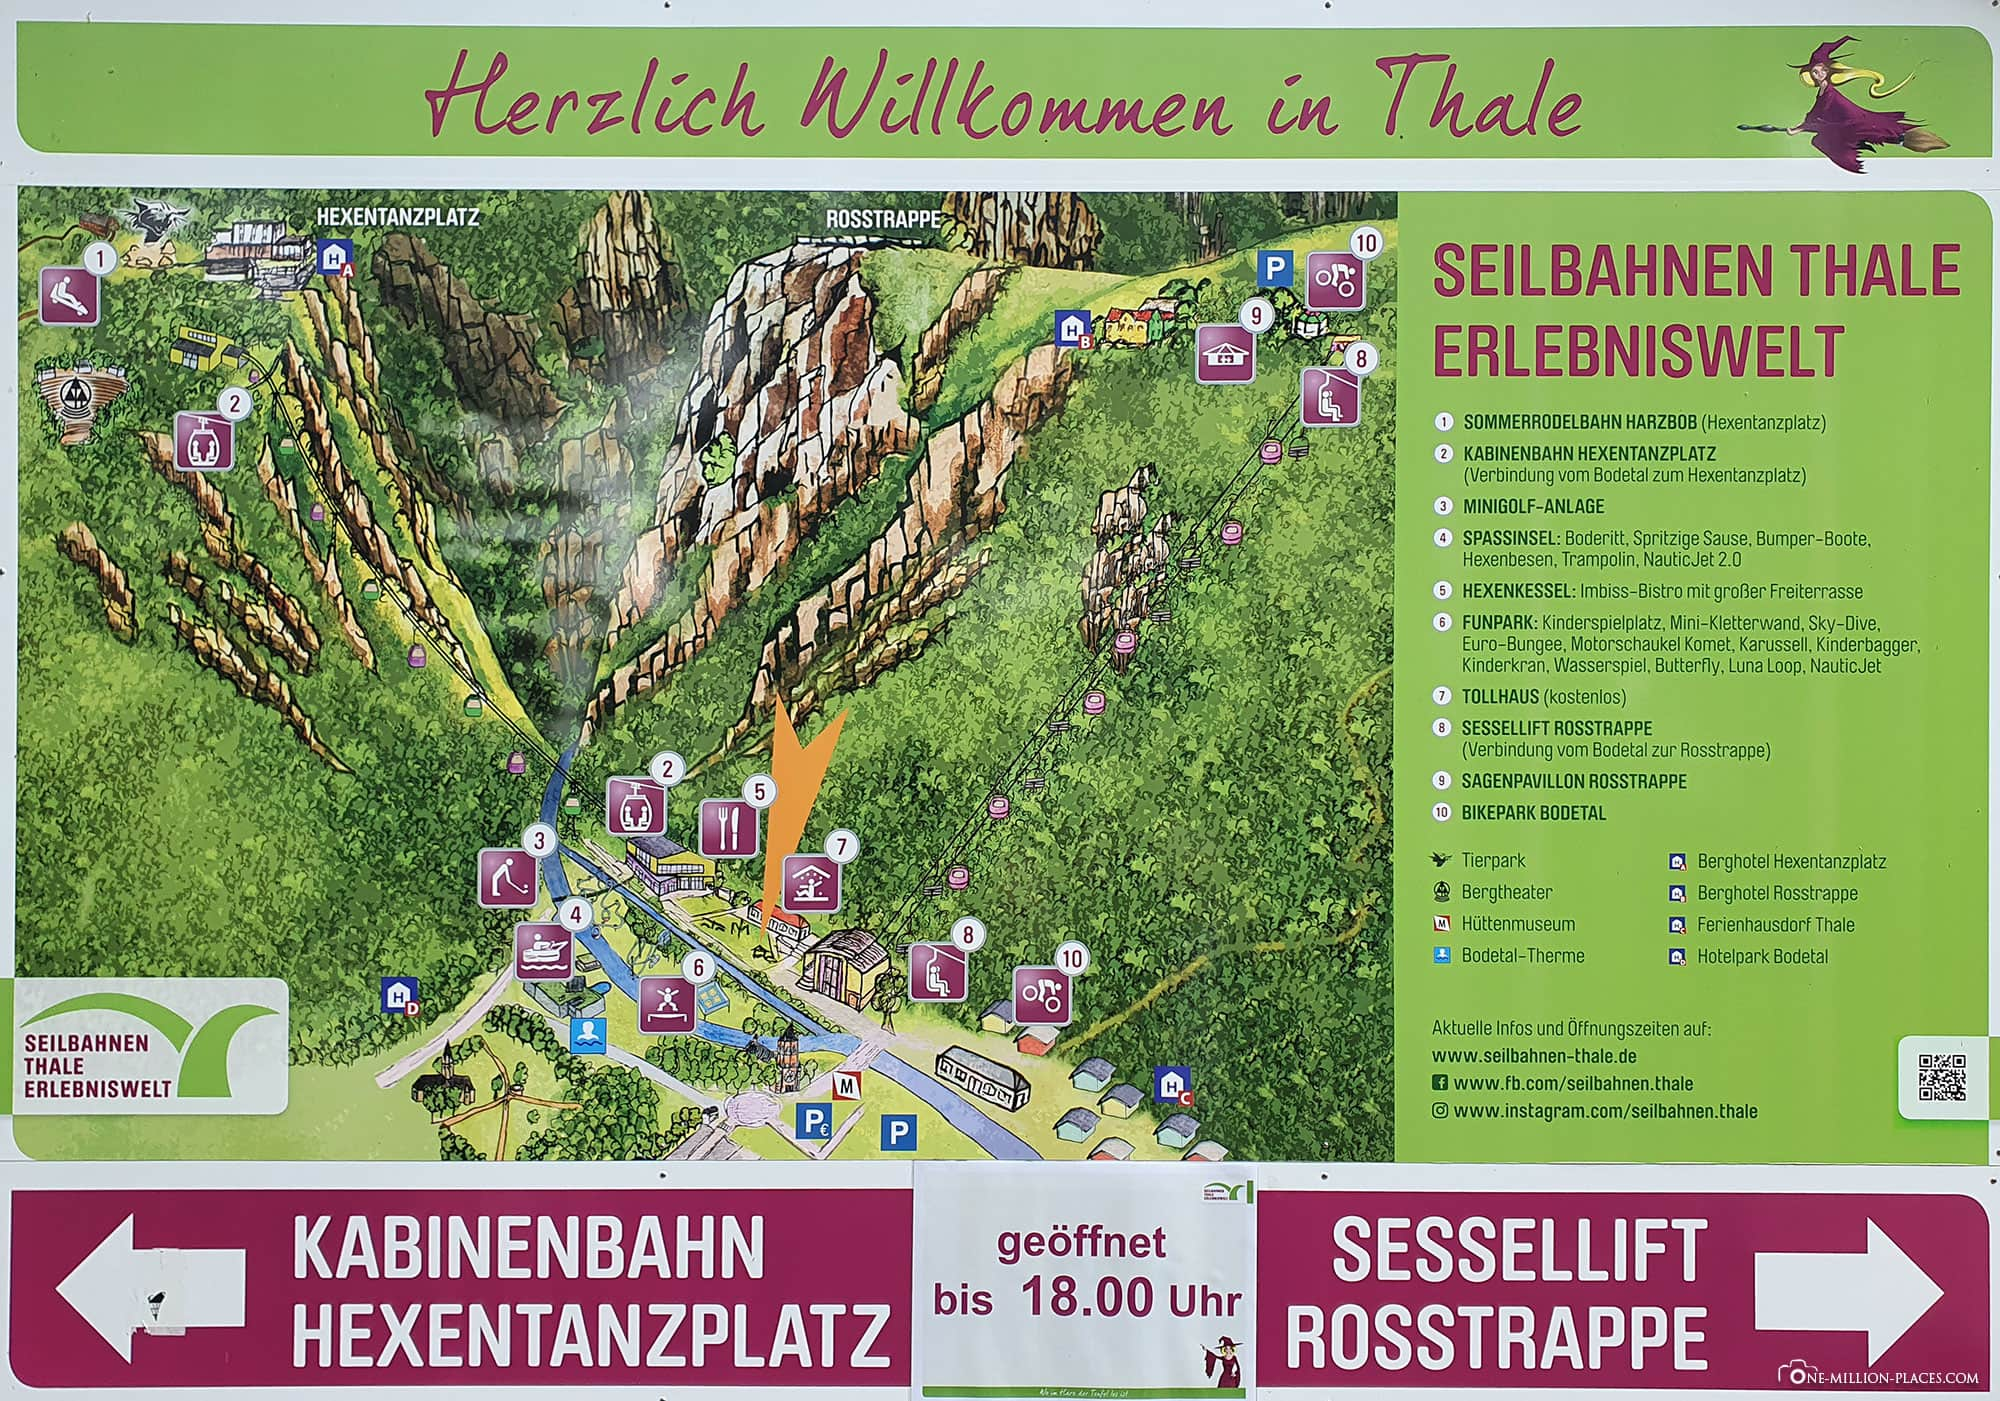 Map, Plan, Adventure World Thale, Bodetal, Travelreport, Saxony-Anhalt, Germany, Blog